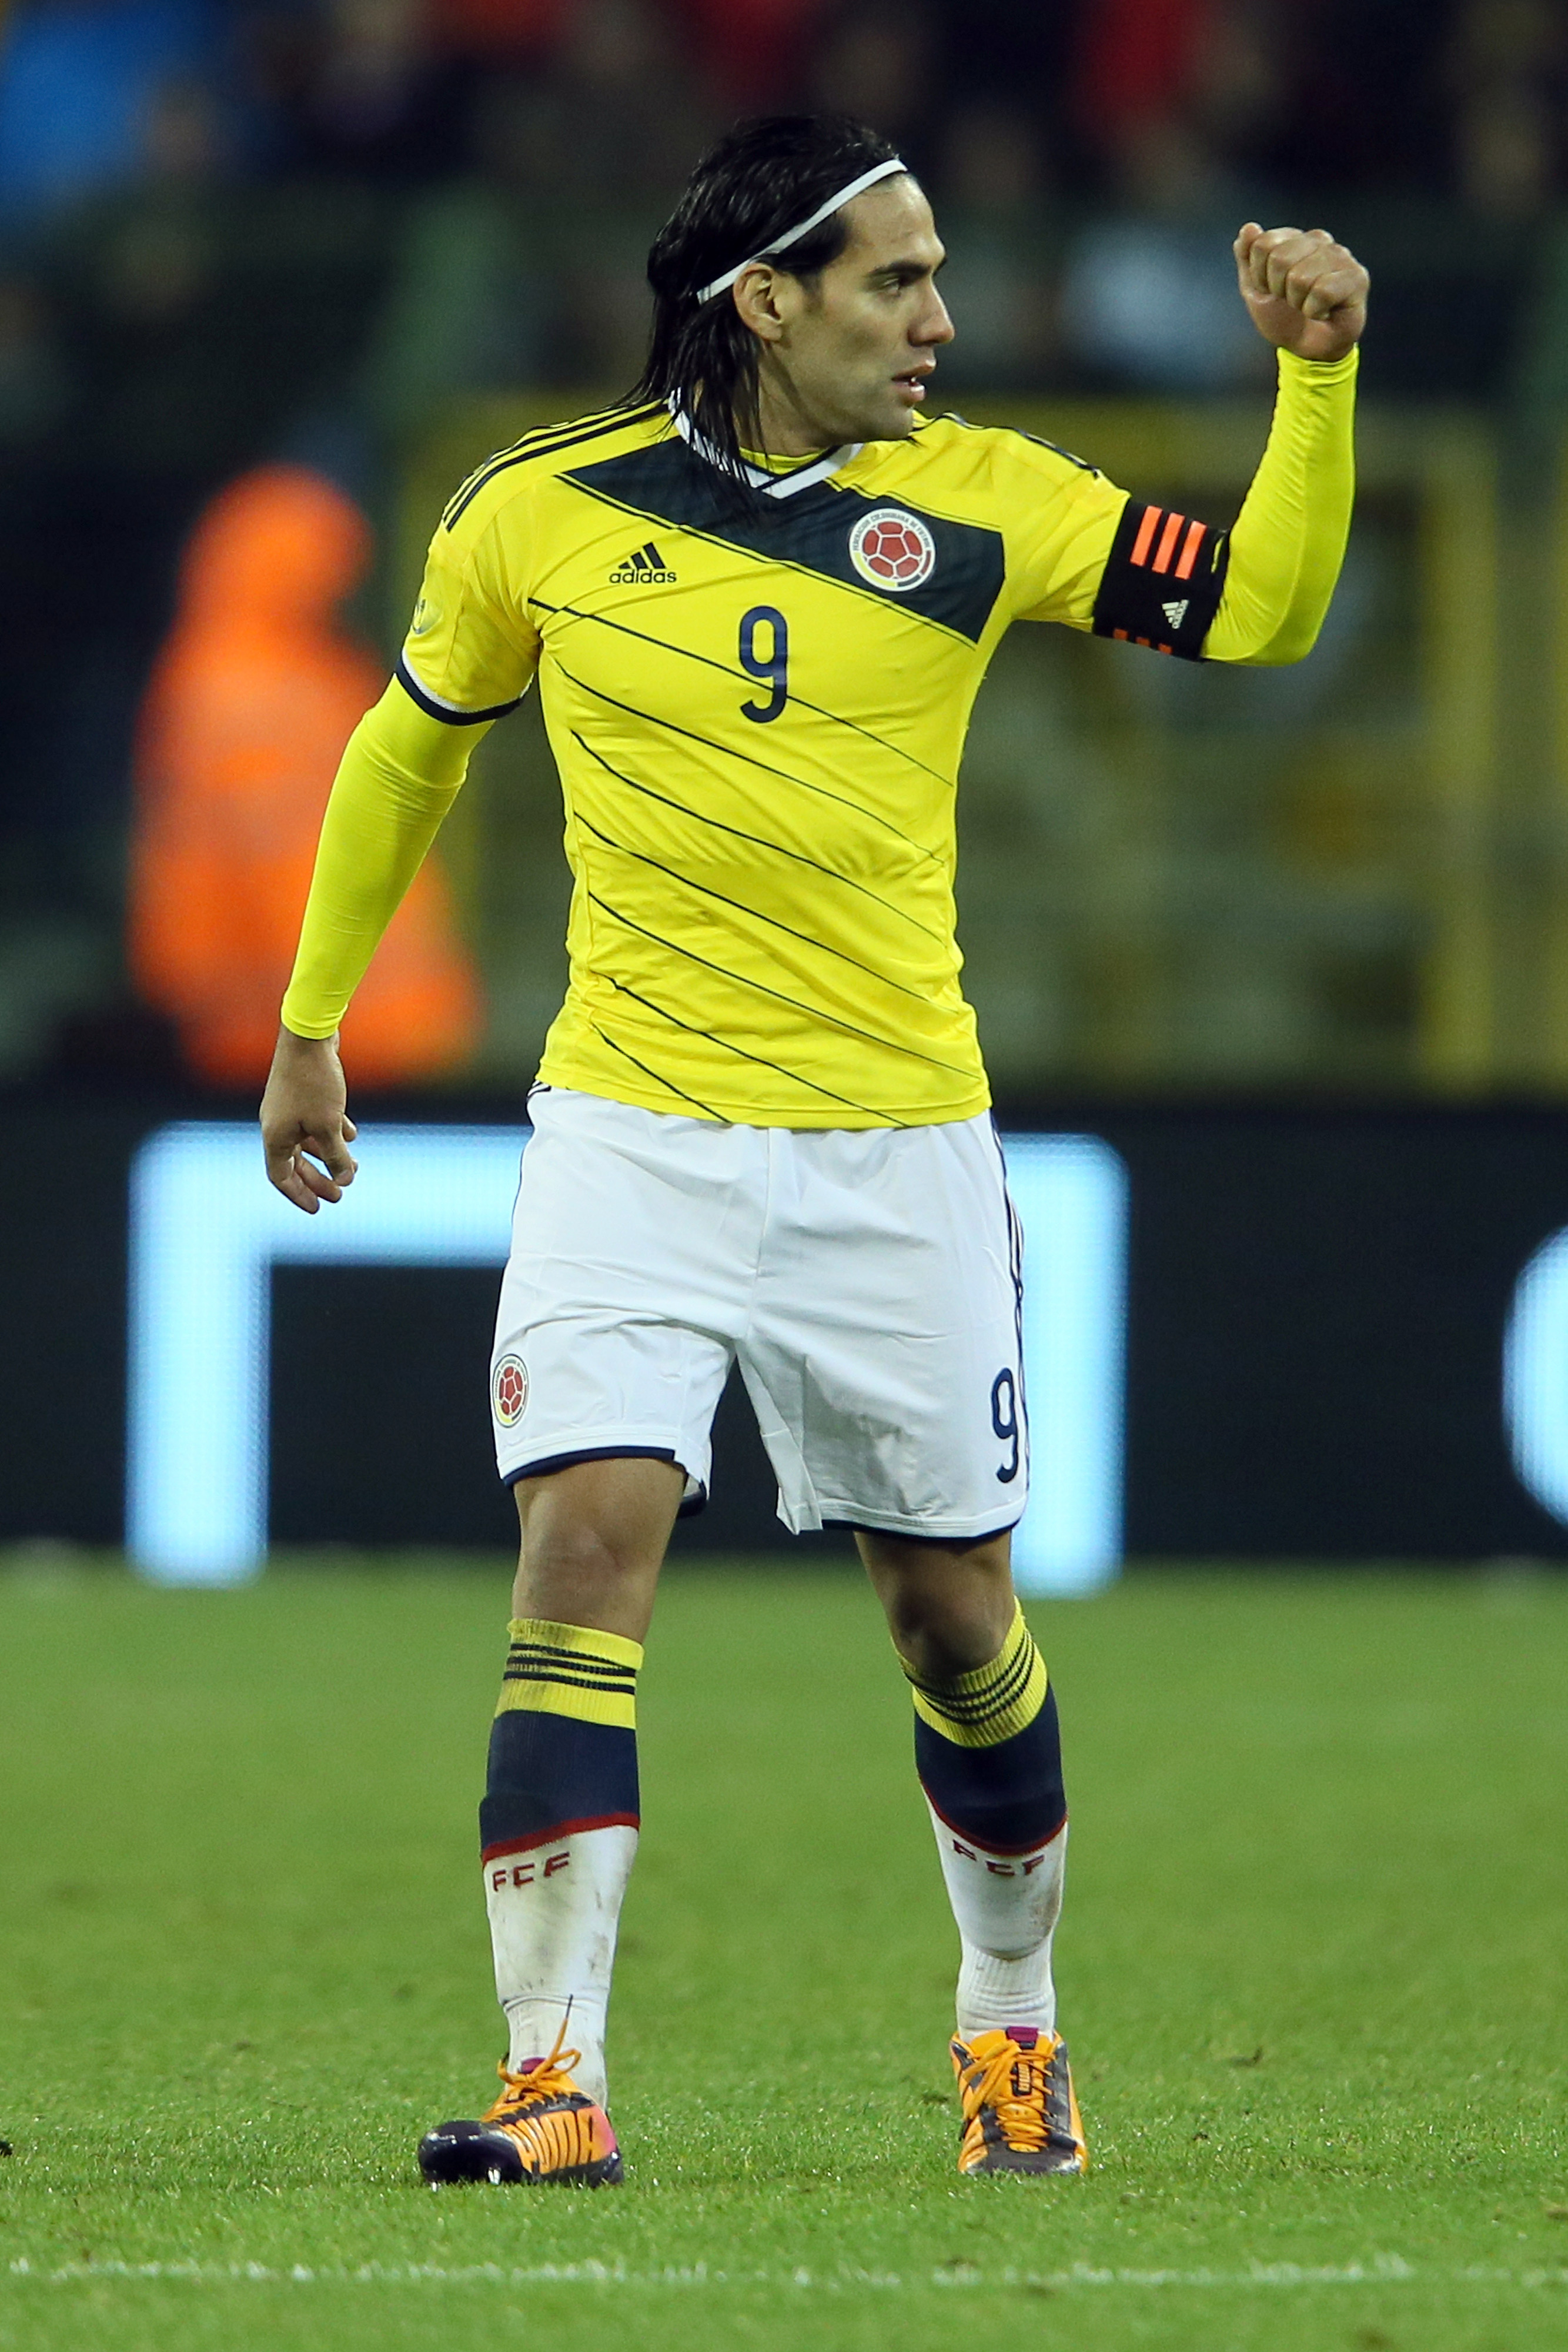 Radamel Falcao ruptures knee ligaments, will miss World Cup